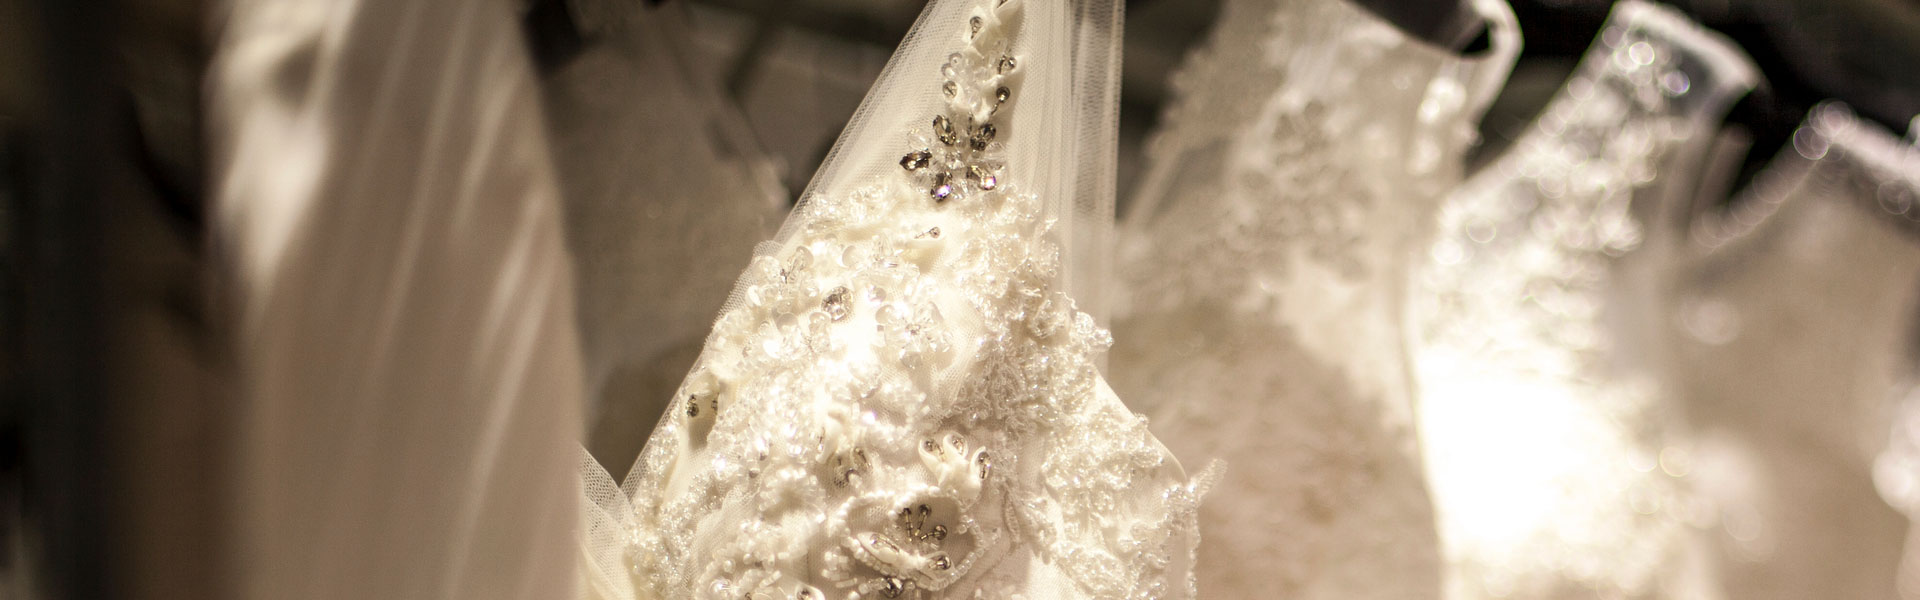 Wedding & Christening Gowns/Preservation Services • Plainview Cleaners